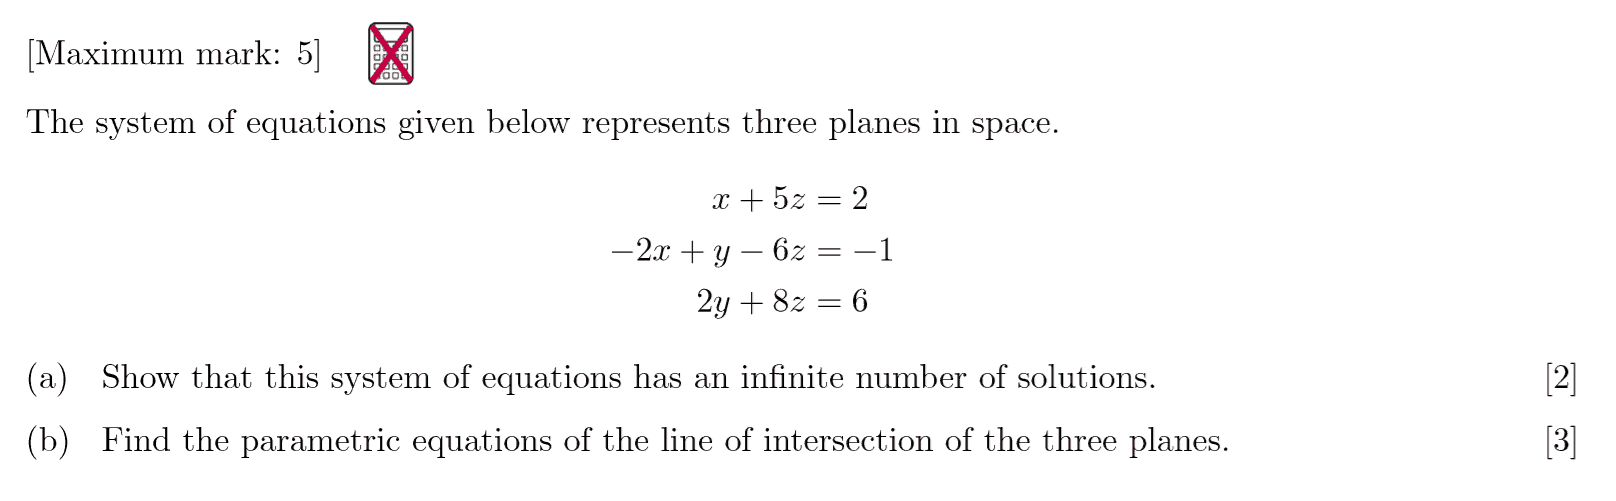 IB Maths HL Questionbank - System of Linear Equations